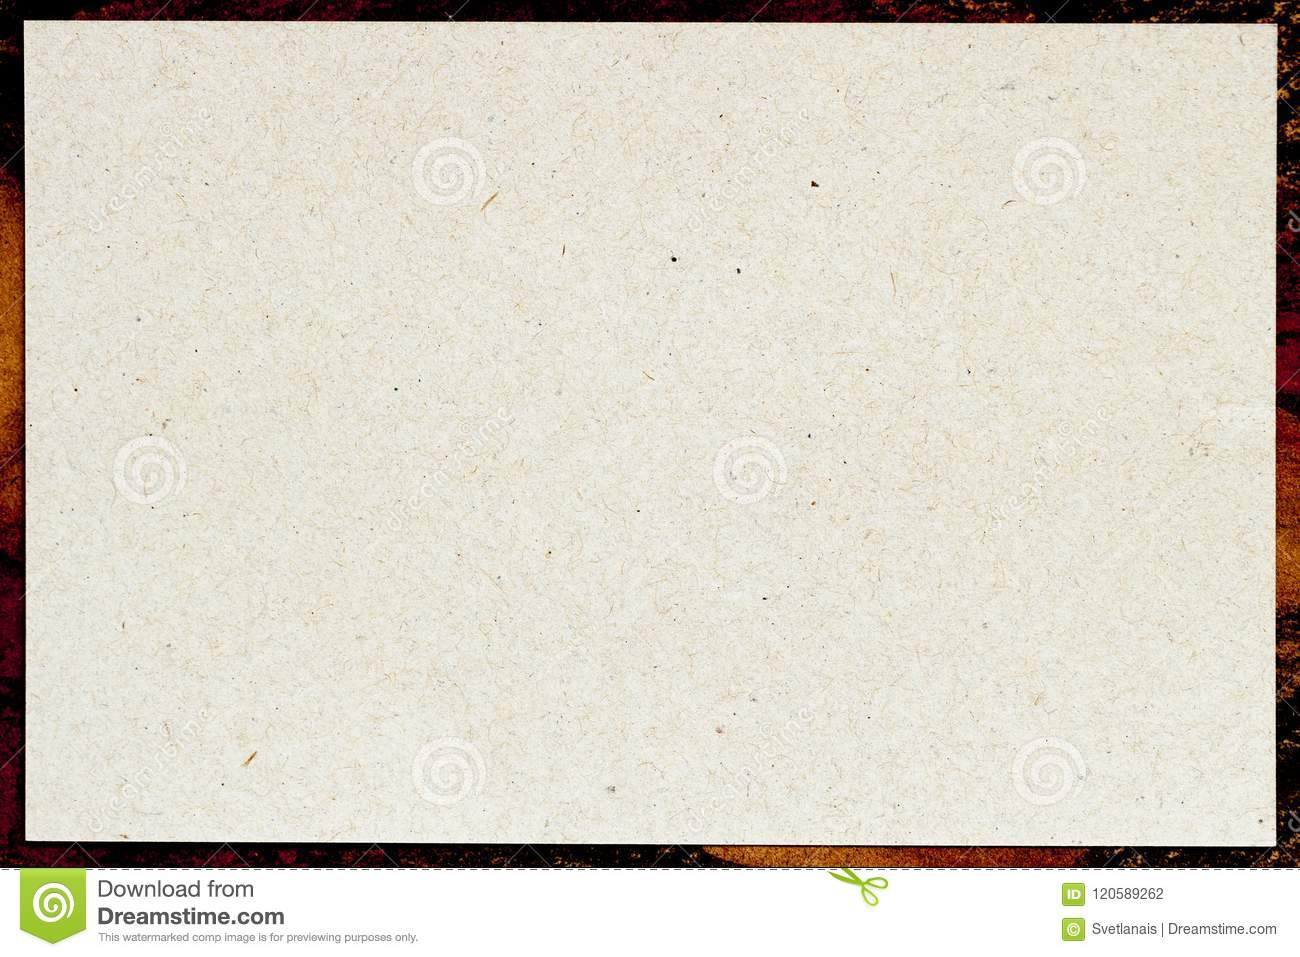 Organic light cream paper in patterned frame, recyclable material, has small inclusions of cellulose. Blank for your